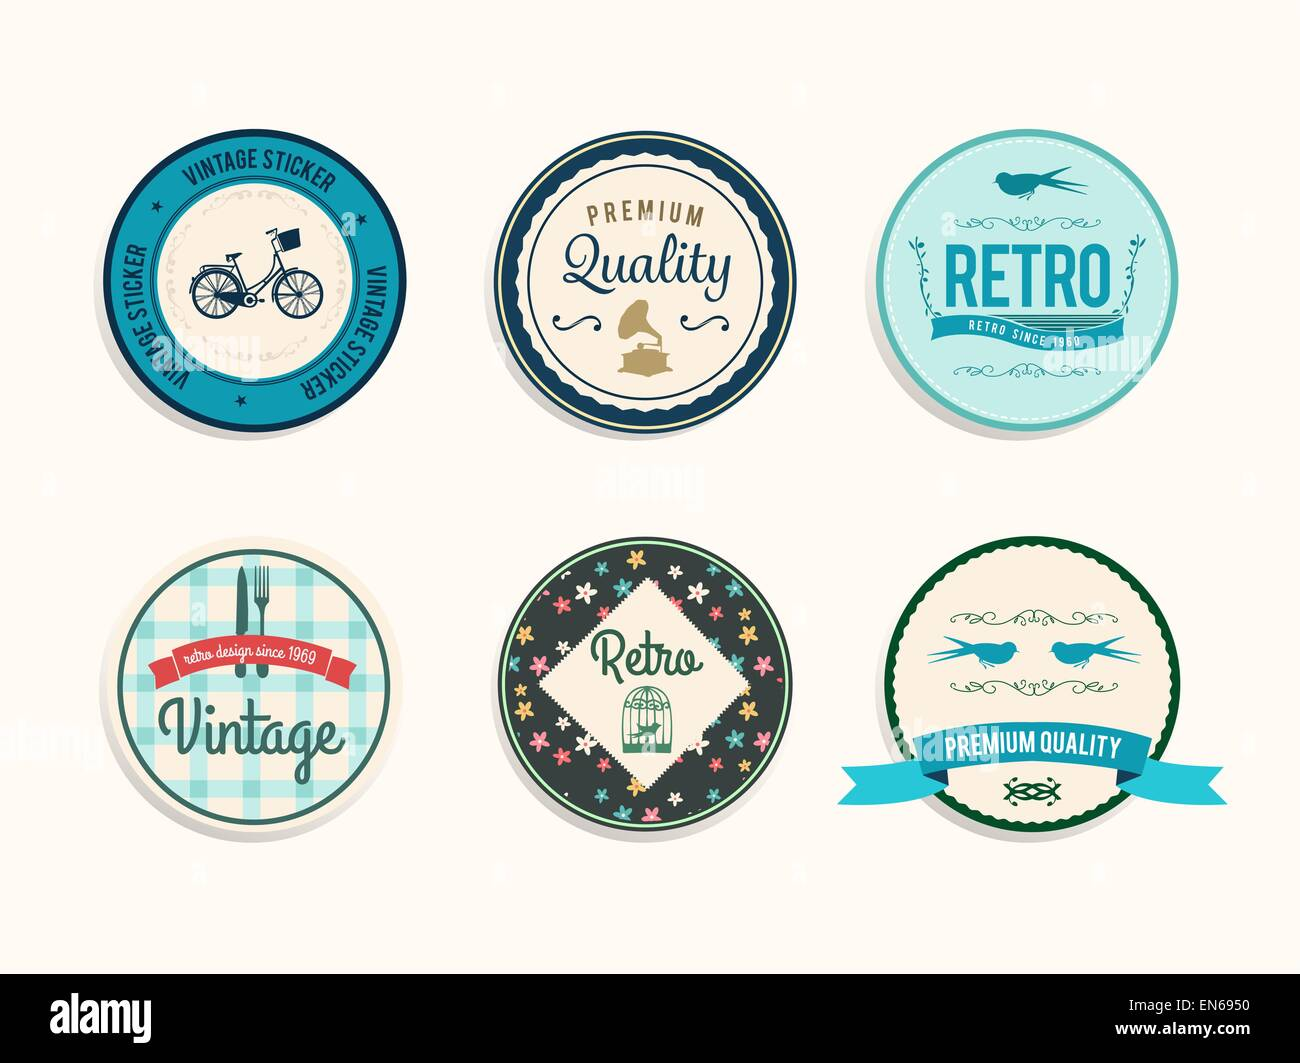 Retro styled retail badges vector - Stock Image